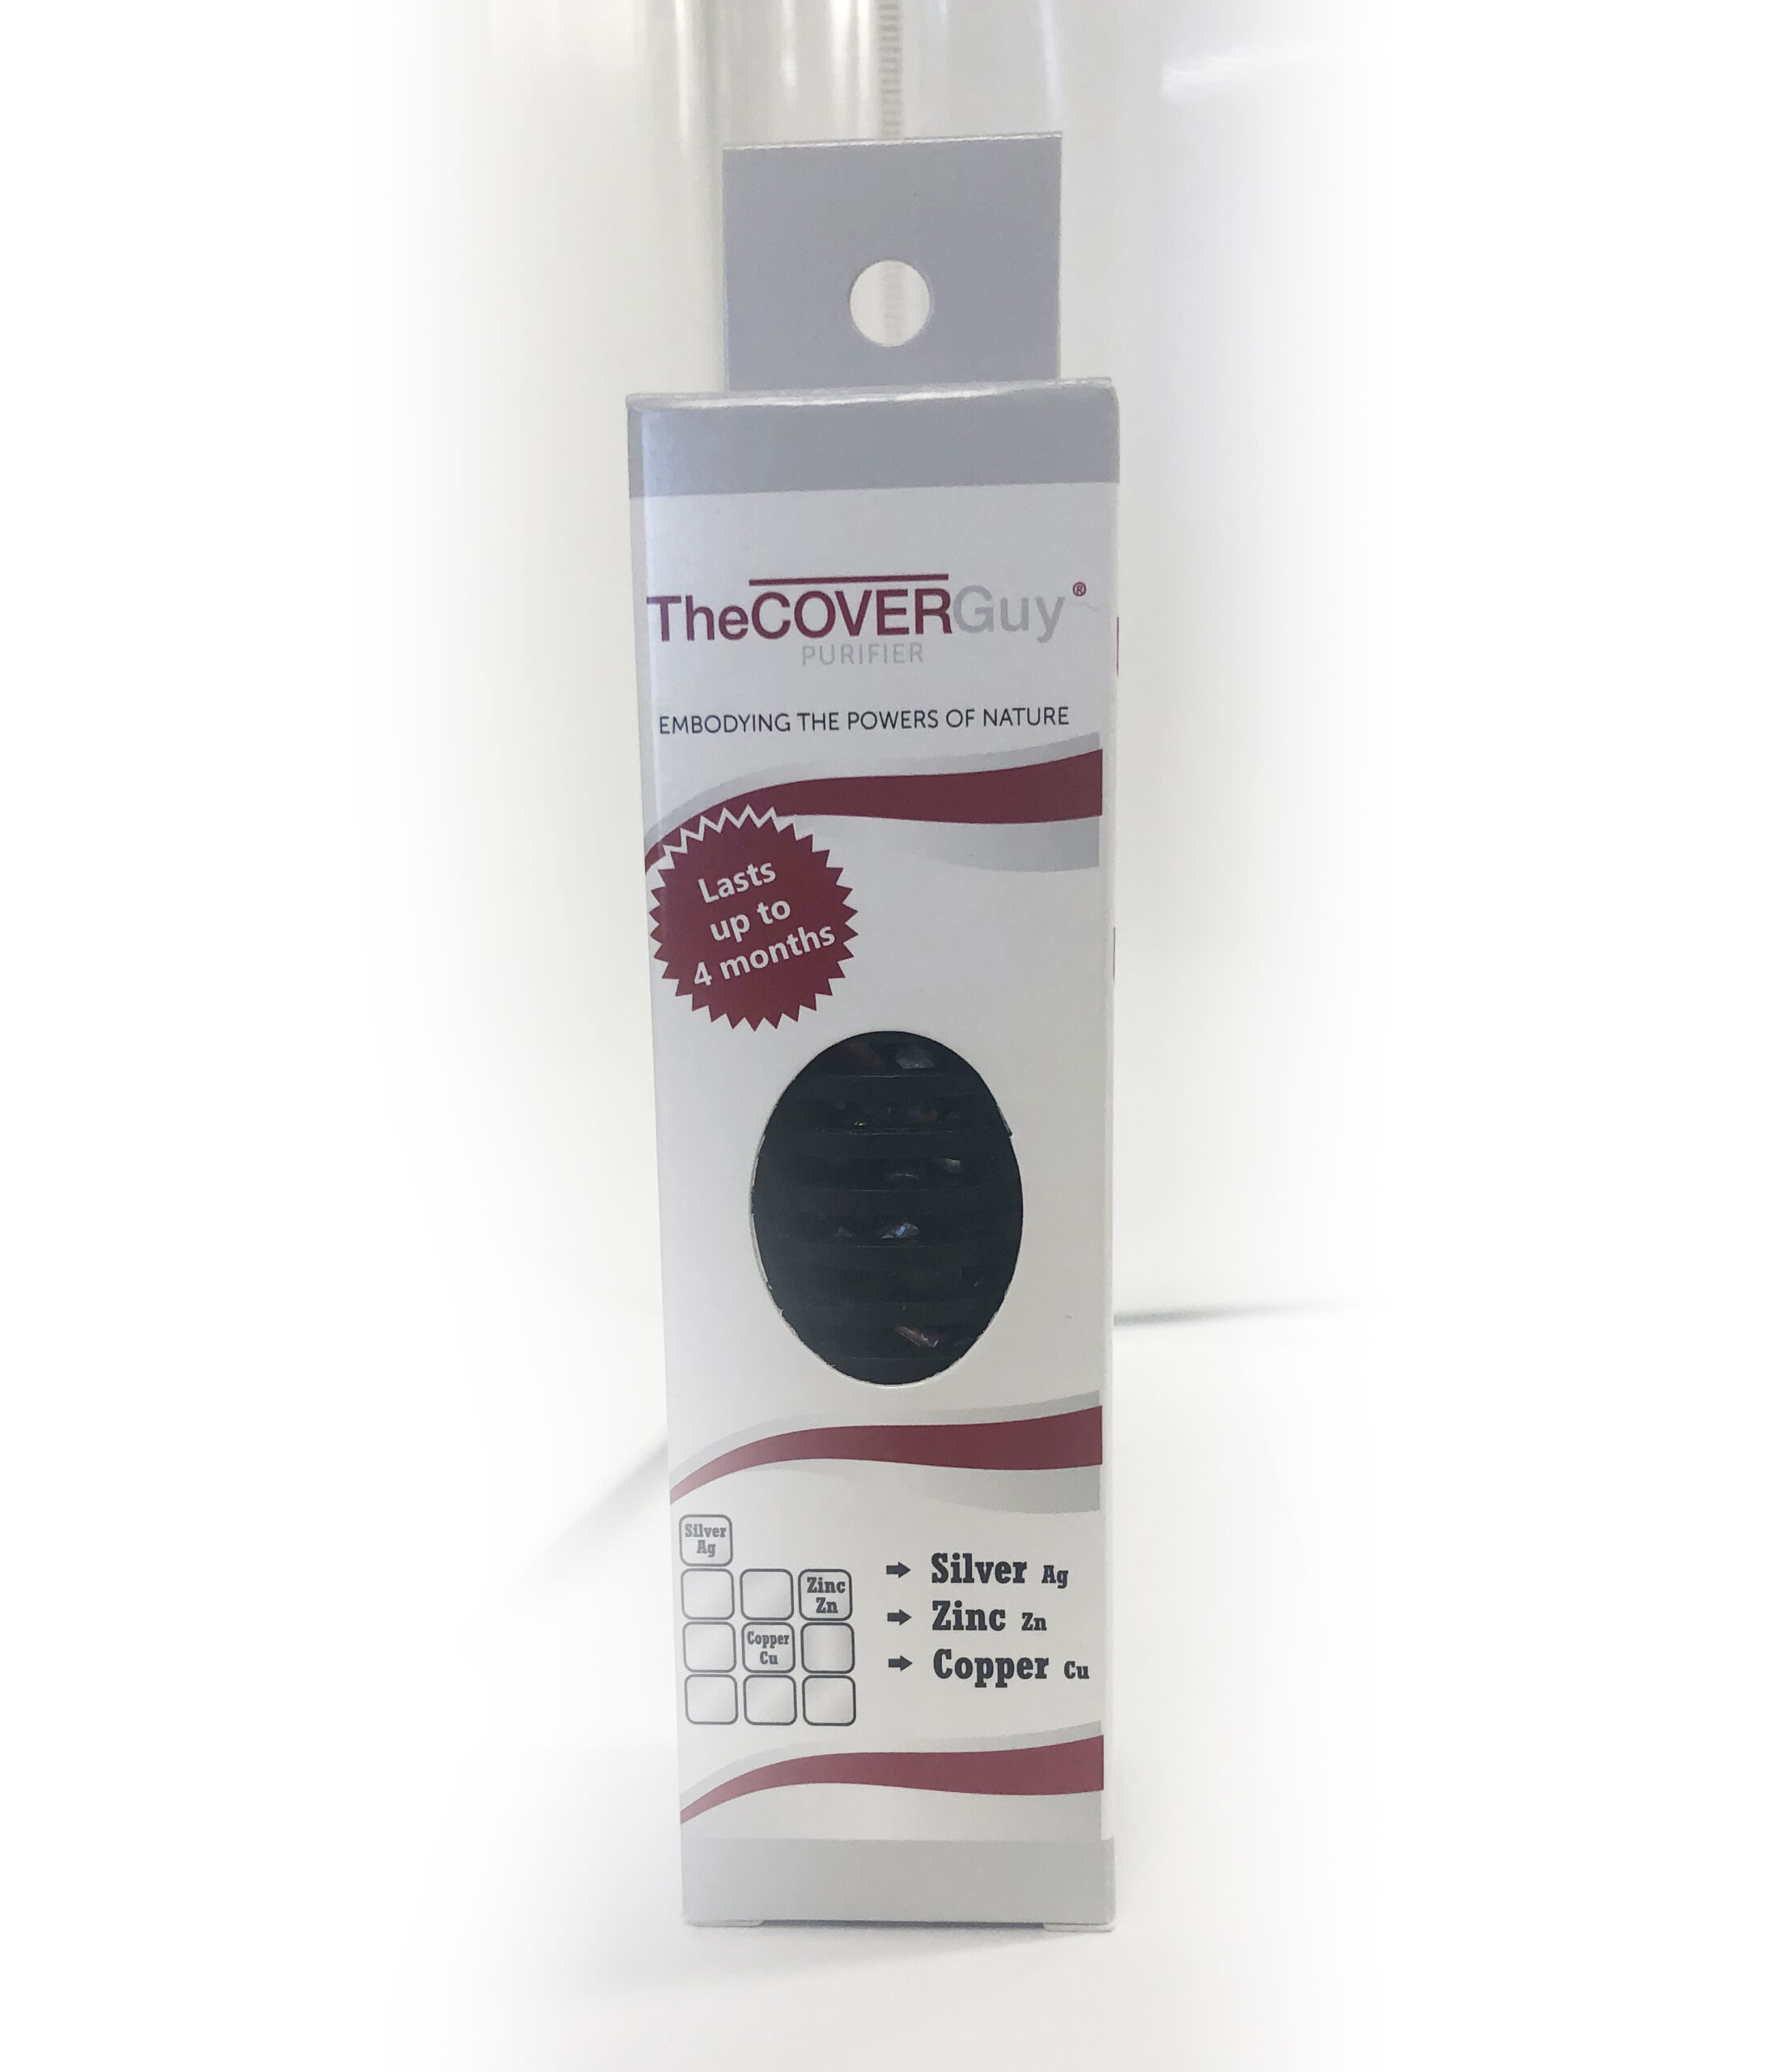 The Cover Guy Mineral Purifier